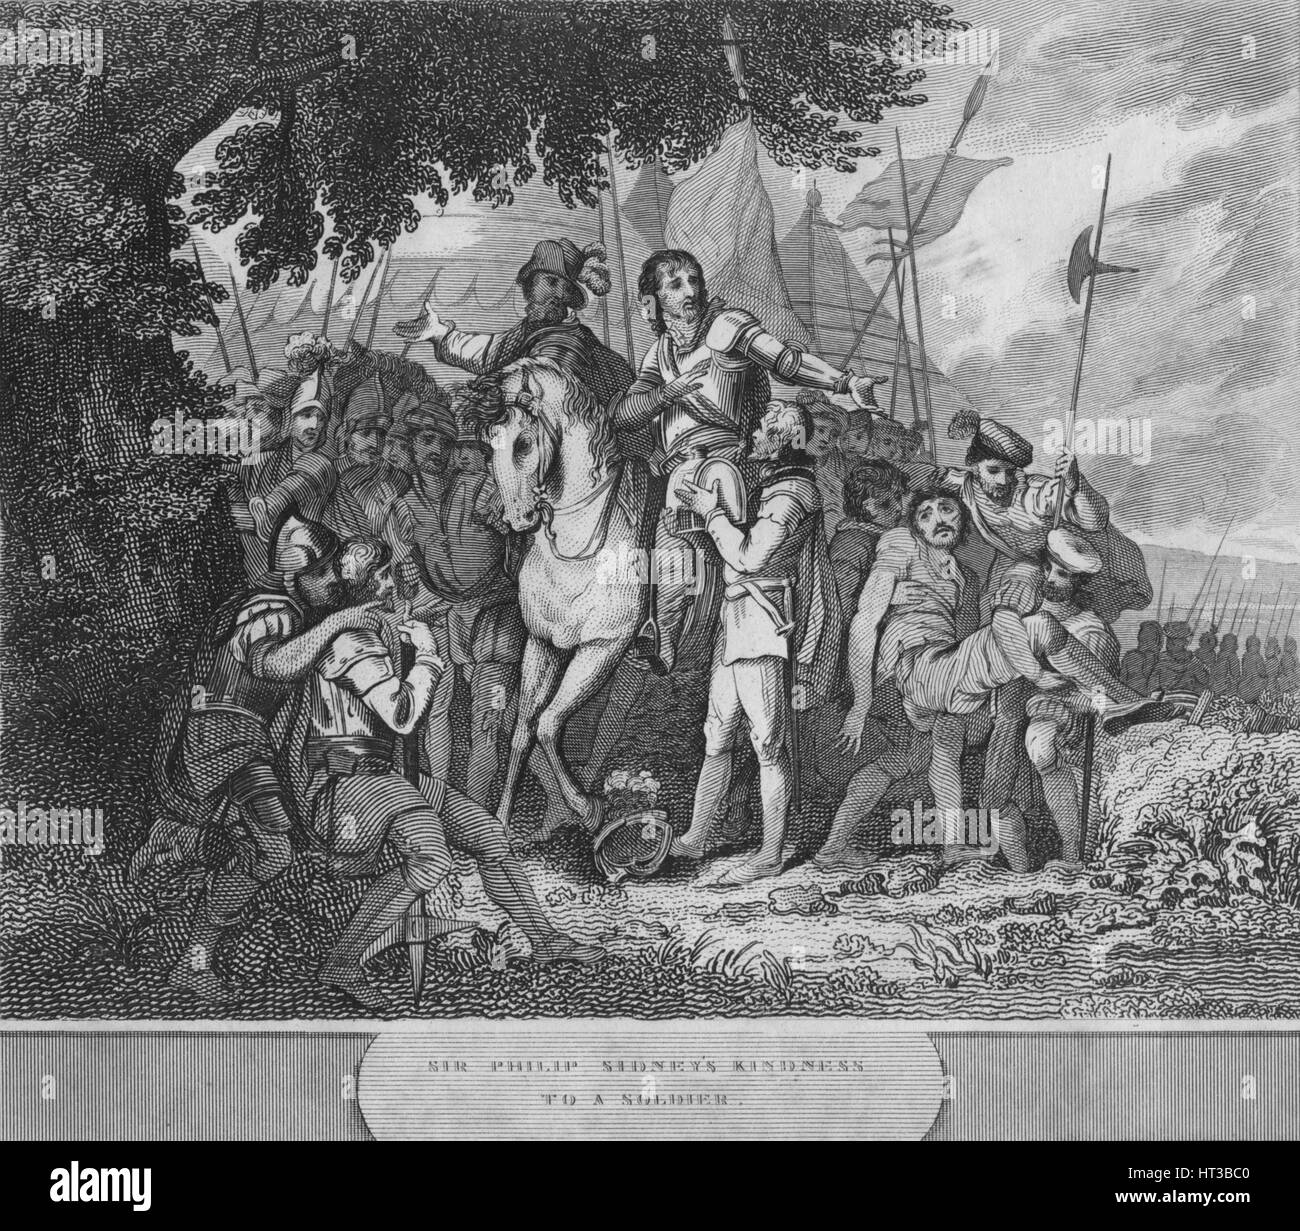 'Sir Philip Sidney's Kindness to a Soldier', 1815. Artist: Unknown. - Stock Image